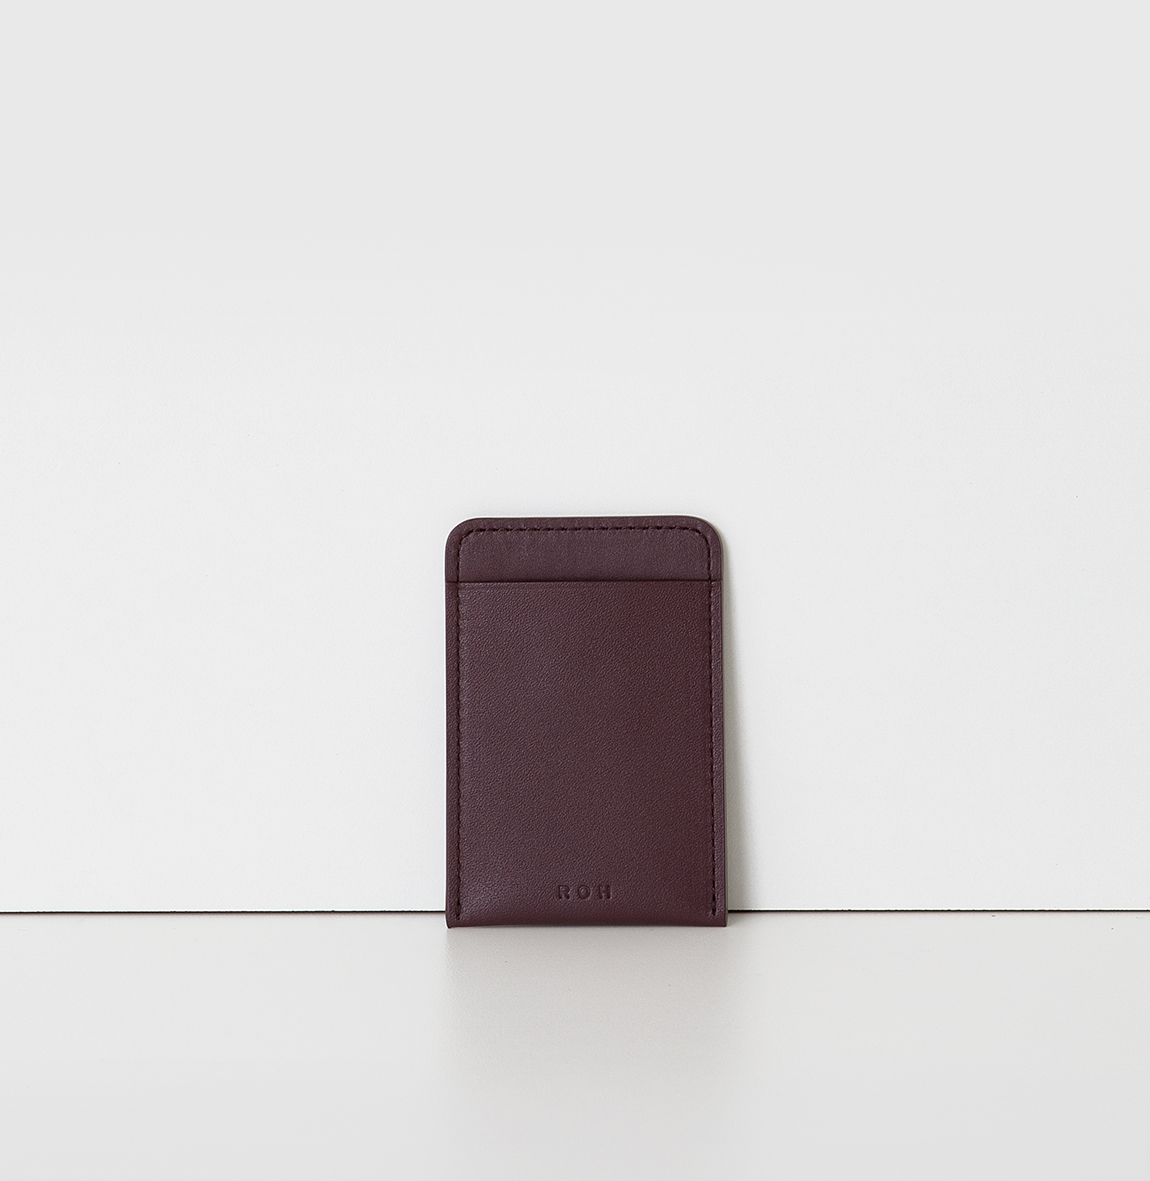 ROH Card Wallet Objet 1 Burgundy